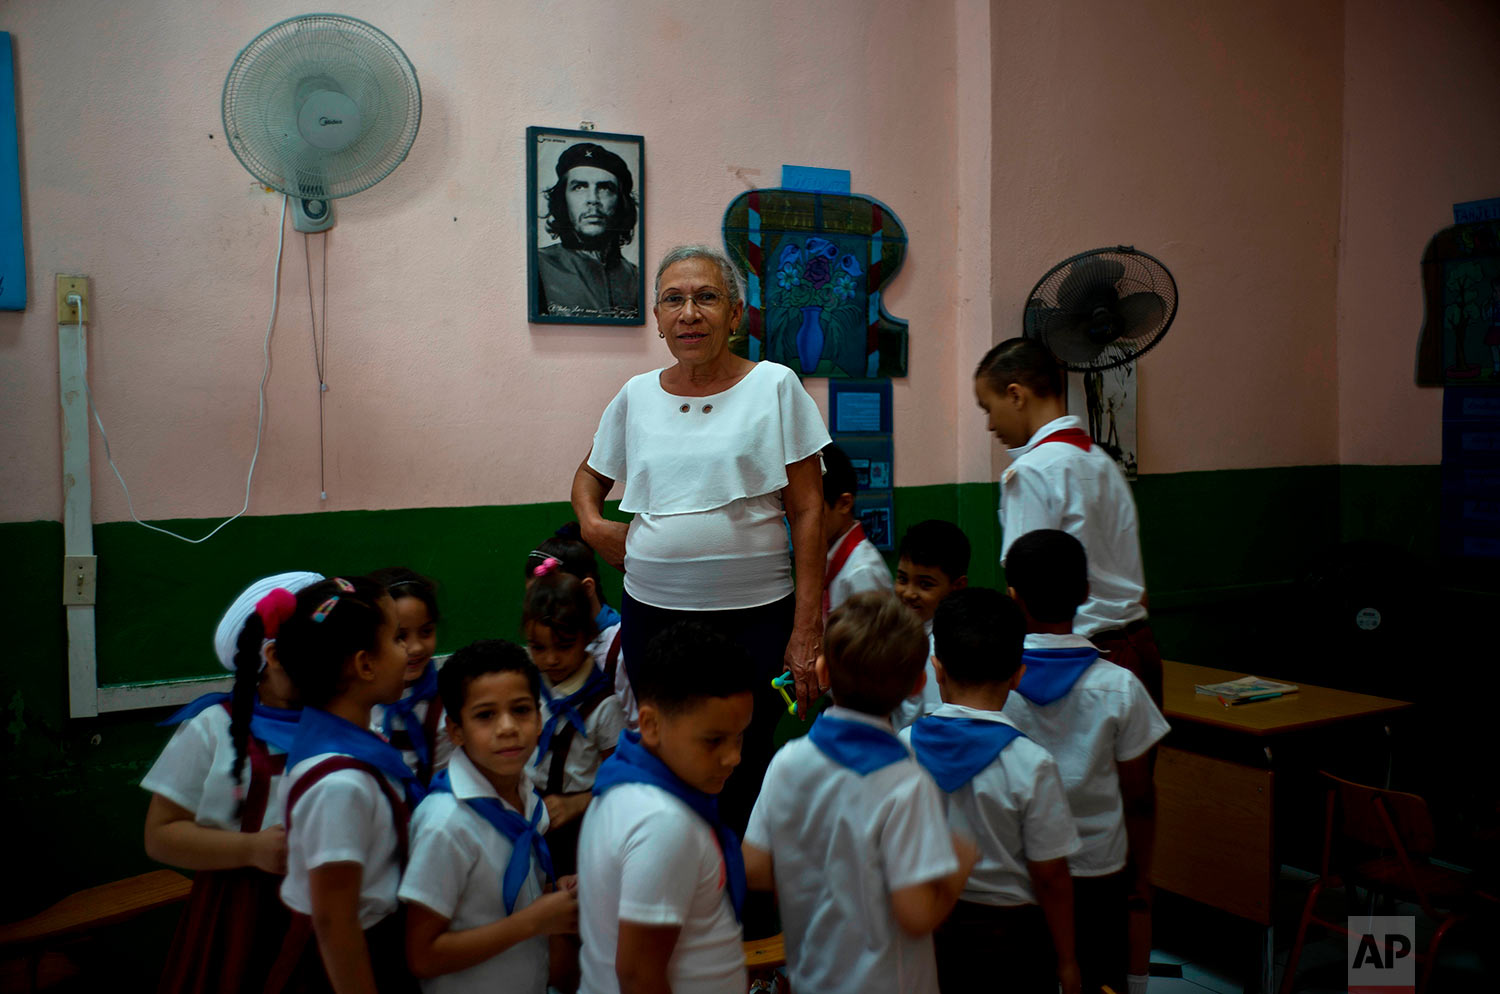 """In this April 13, 2018 photo, teacher Luisa Pacheco, 65, poses with her students in Havana, Cuba. Pacheco, who began teaching at the age of 14 in the Sierra Maestra's rural schools, said she likes education because she wants to train new generations for a good future and achieve what she did. When asked about Raul Castro's successor, she said """"I hope the new president will do what our commander Fidel Castro did,"""" adding that she wants the U.S. to remove its embargo against Cuba to help improve the economy. (AP Photo/Ramon Espinosa)"""